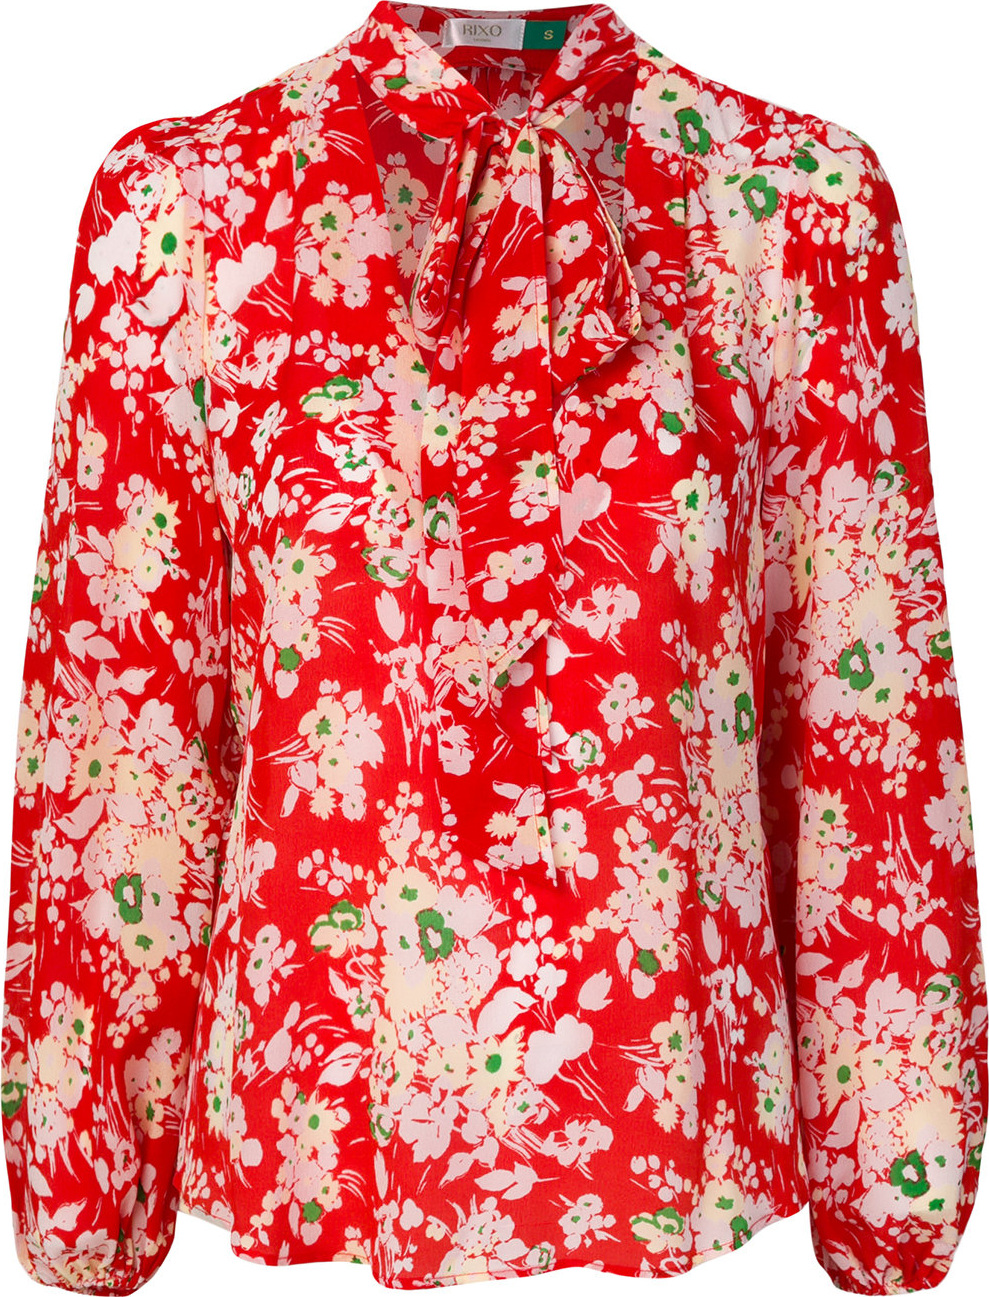 RIXO LONDON - Moss bunch floral blouse